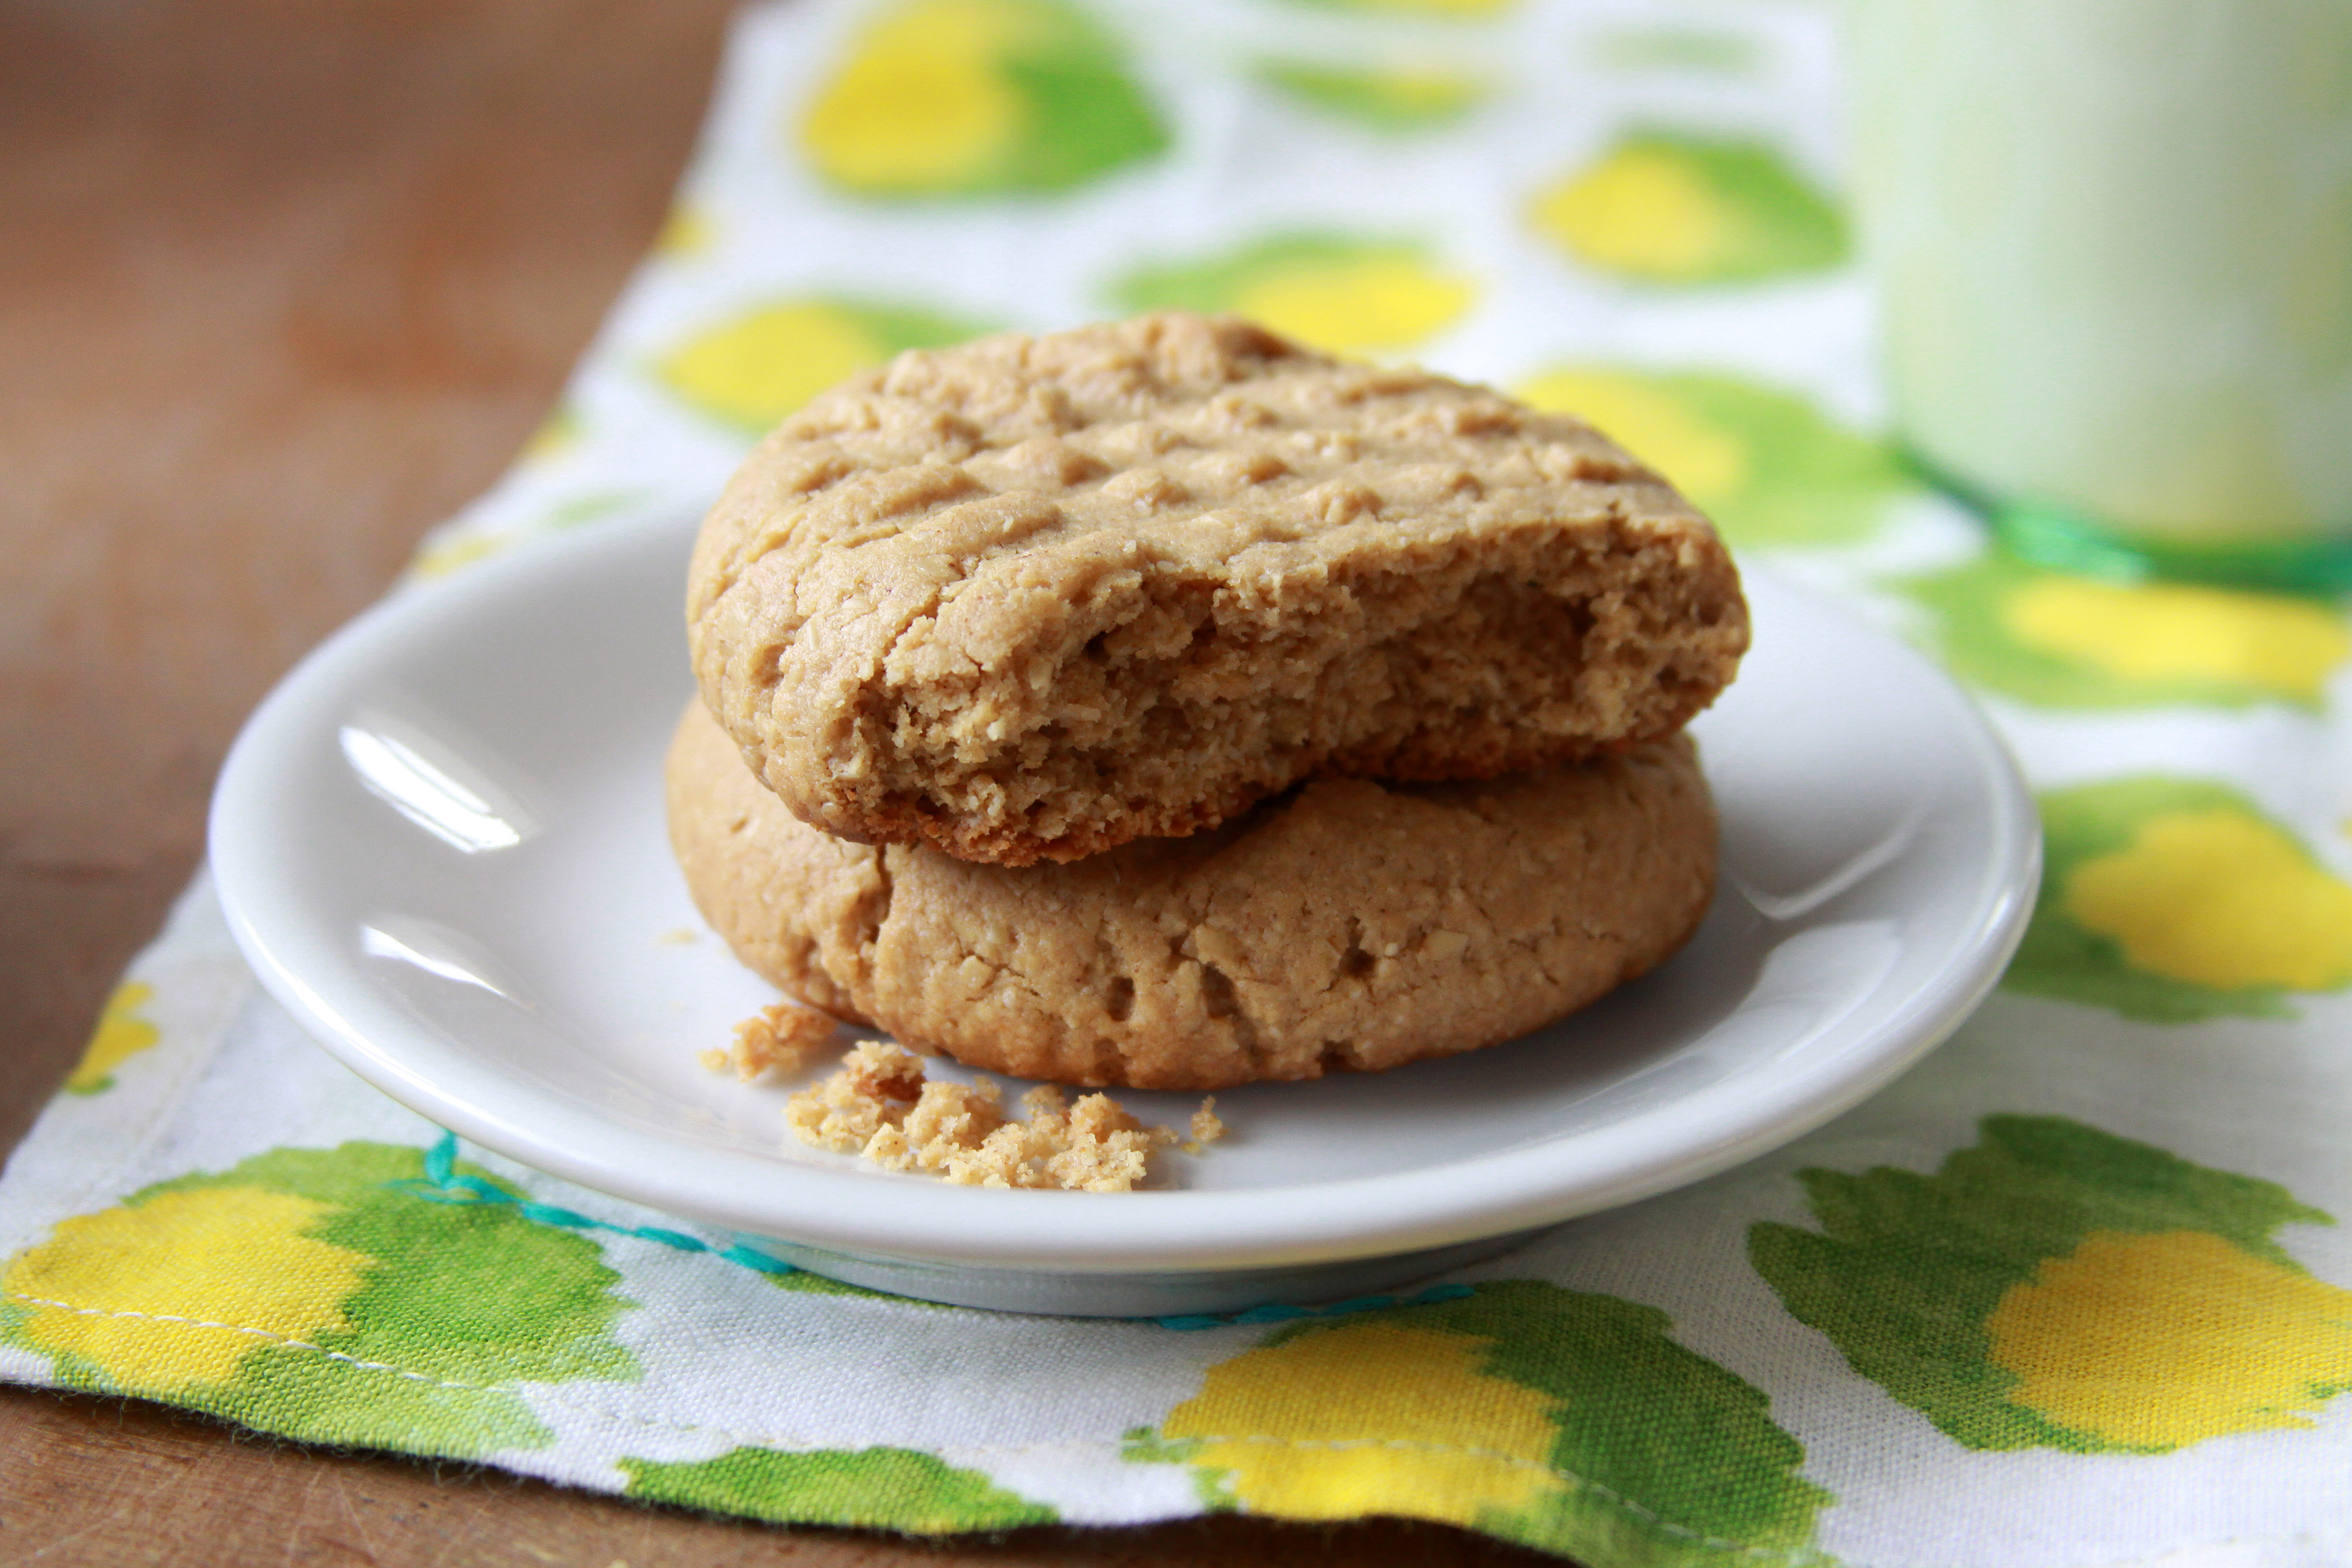 Healthier Peanut Butter & Banana Cookies | Espresso and Cream